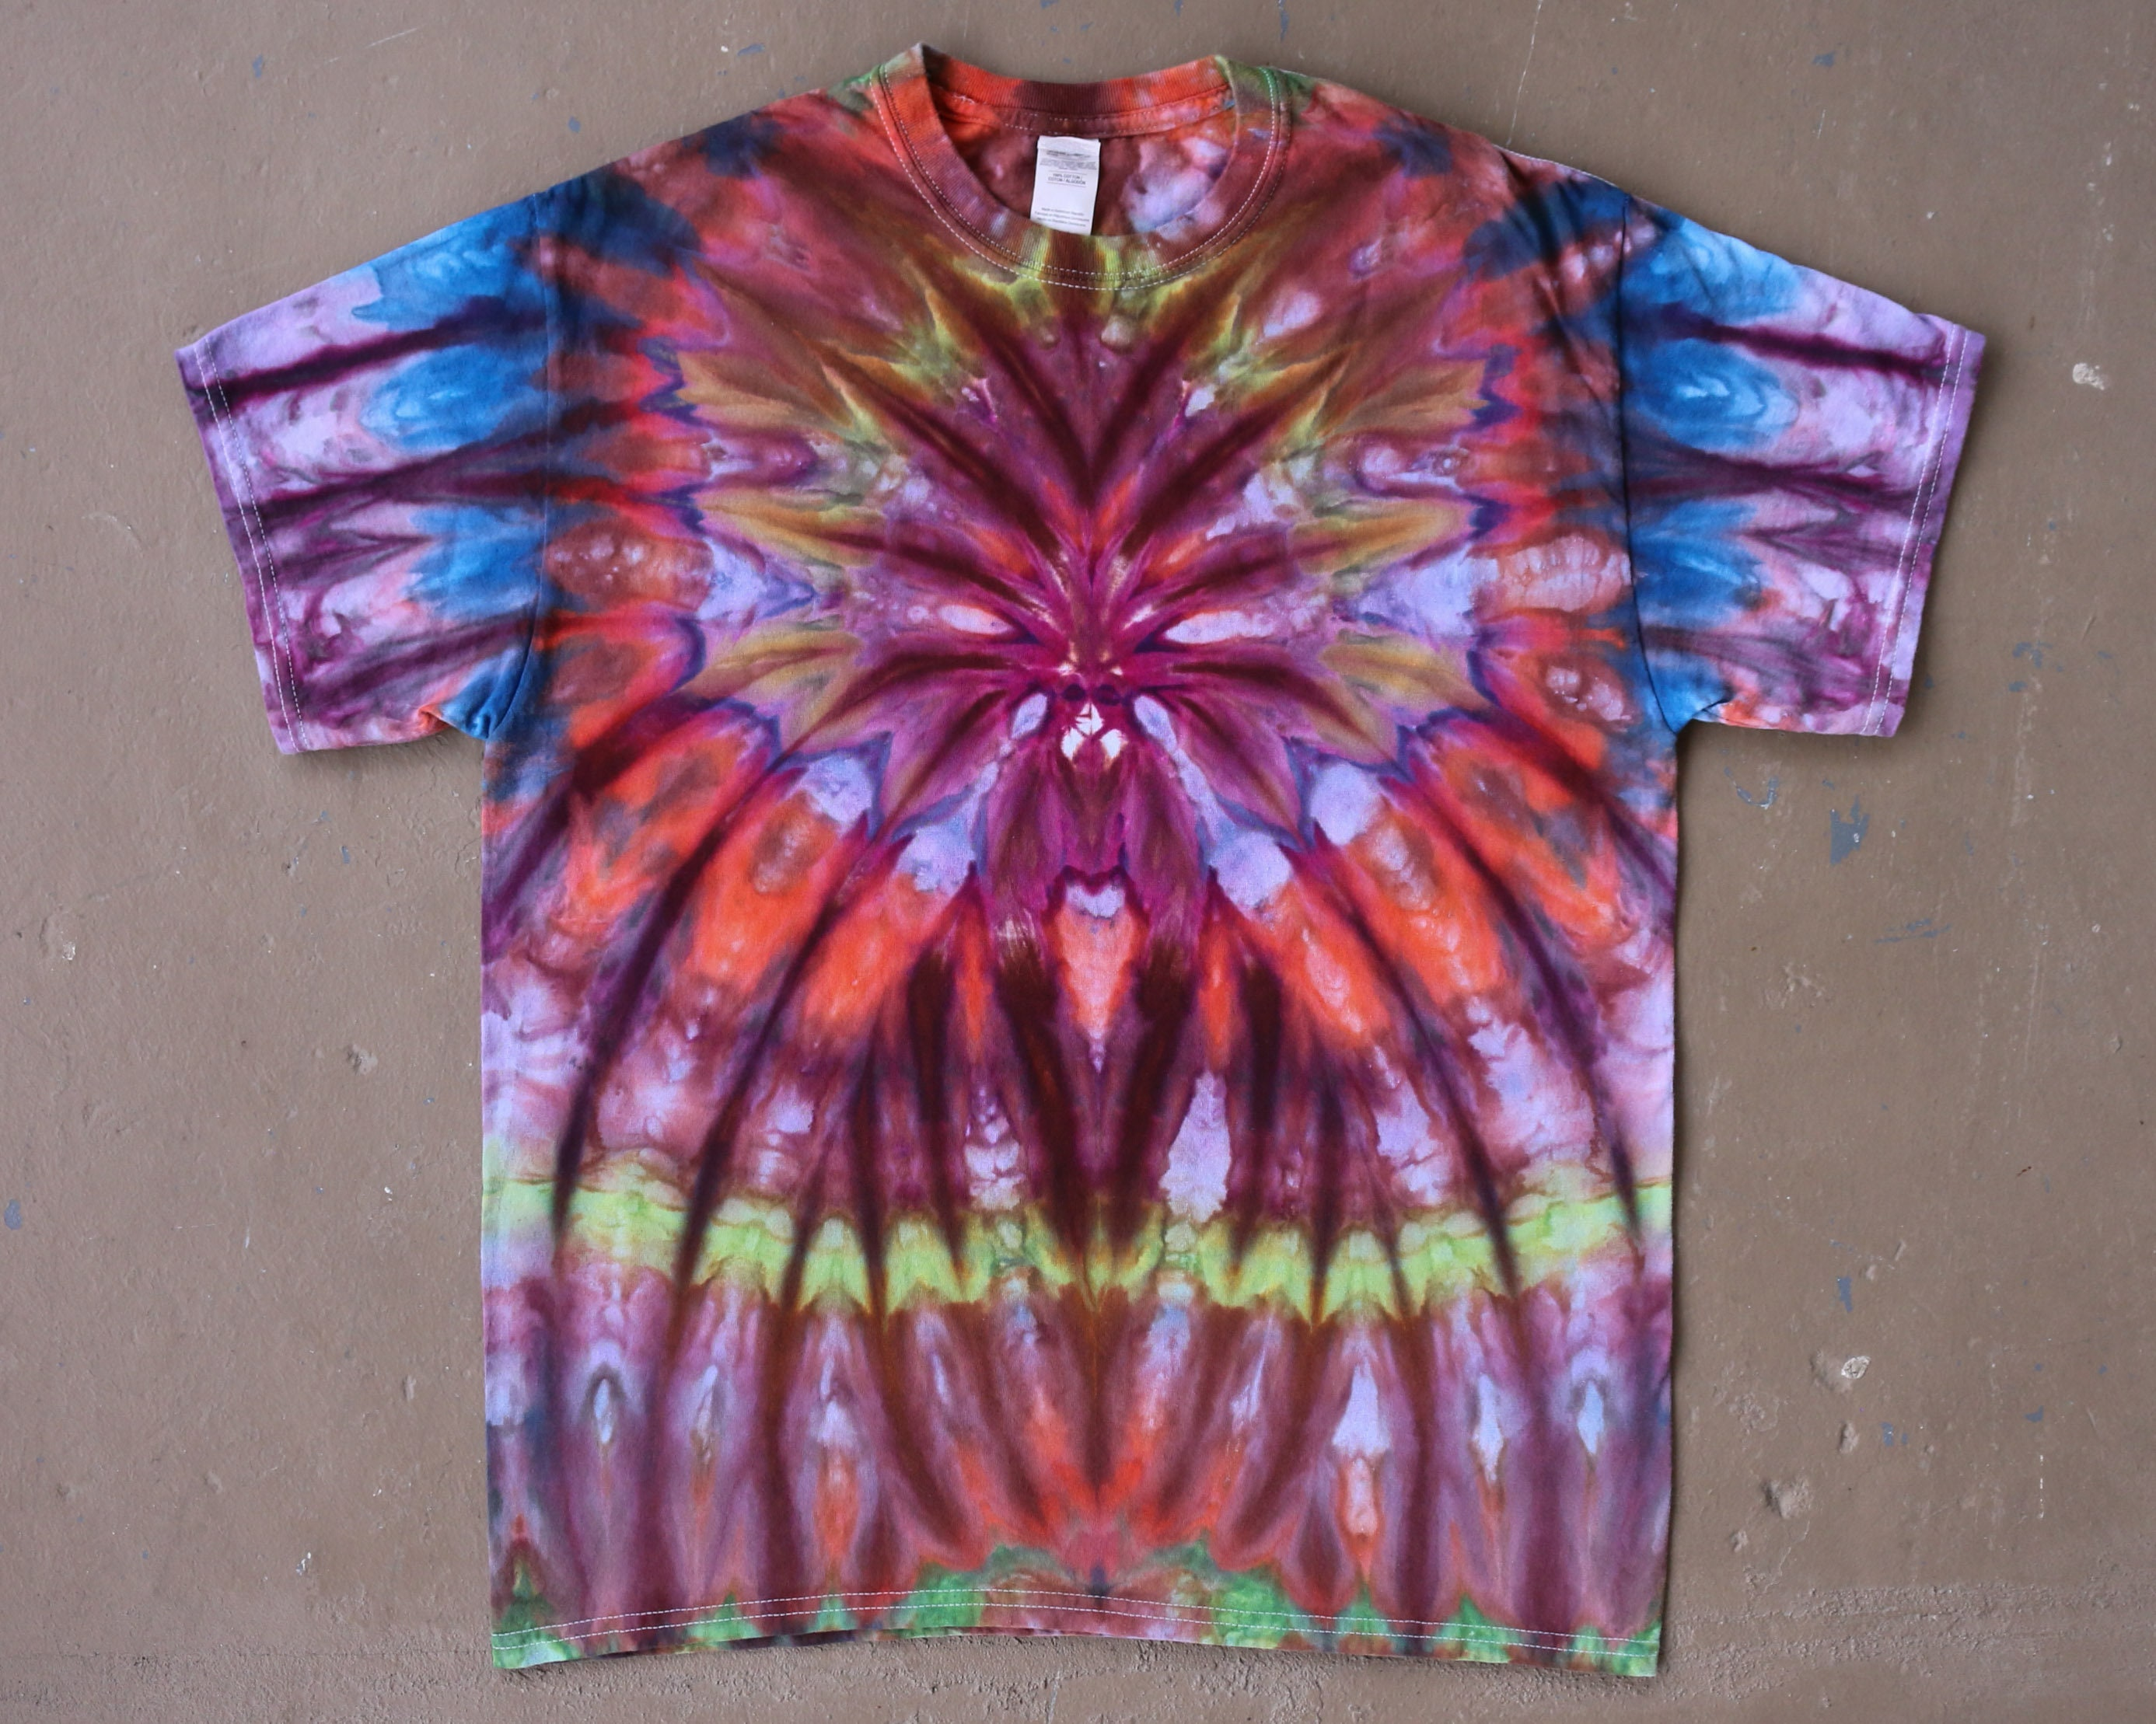 Psychedelic shirt Psy festival shirt Mens patterned shirt Hippie clothes Cool summer shirt Aesthetic clothing Burning man costumes